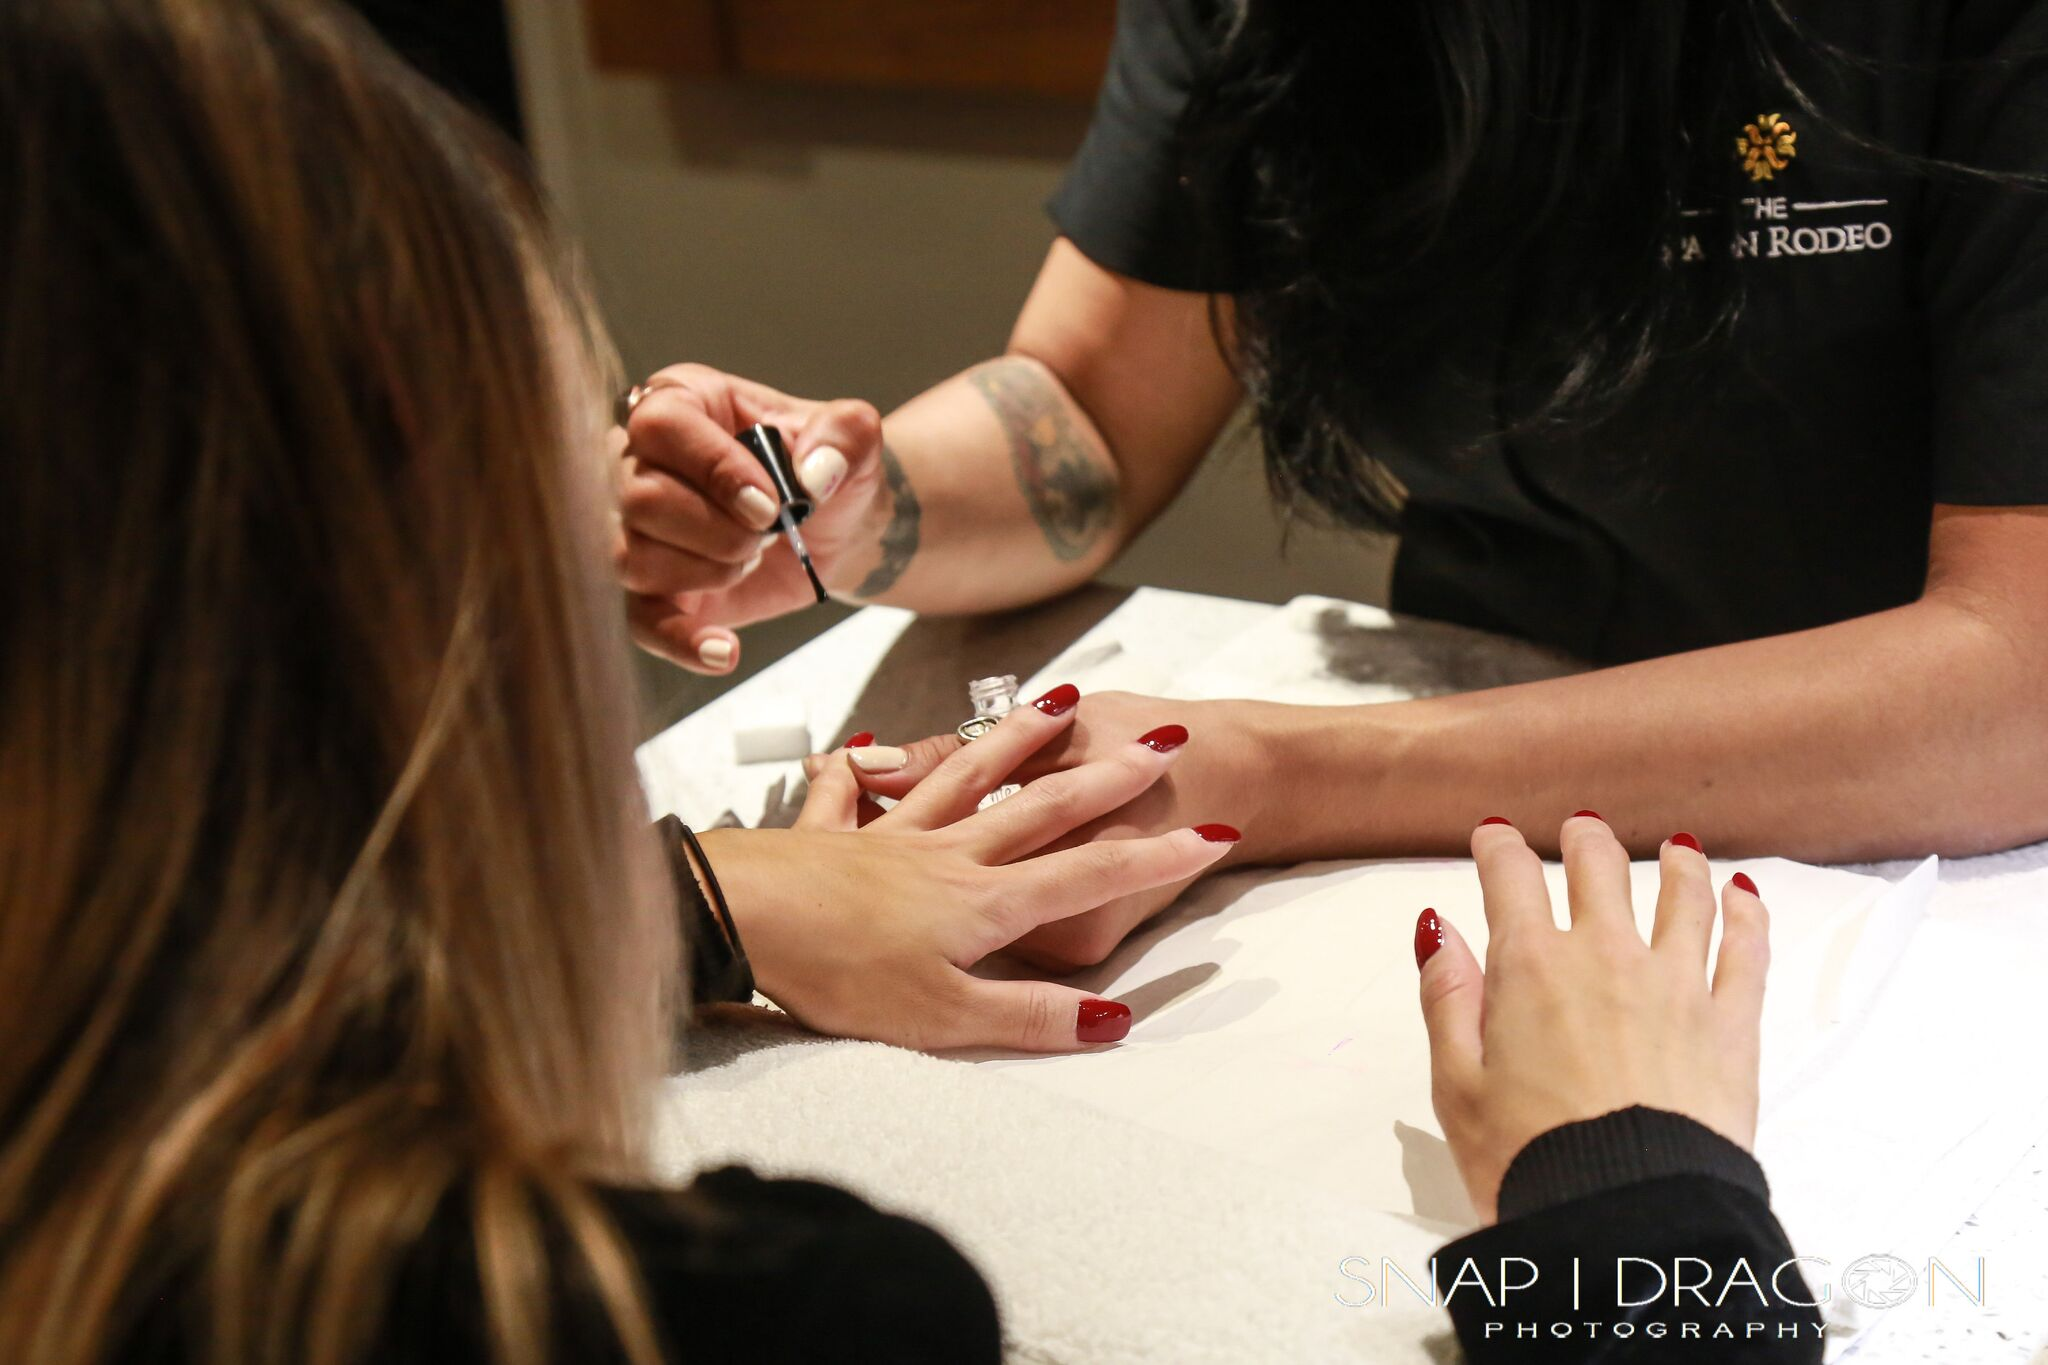 Not Your Average Manicure. Photo Credit: The Spa on Rodeo